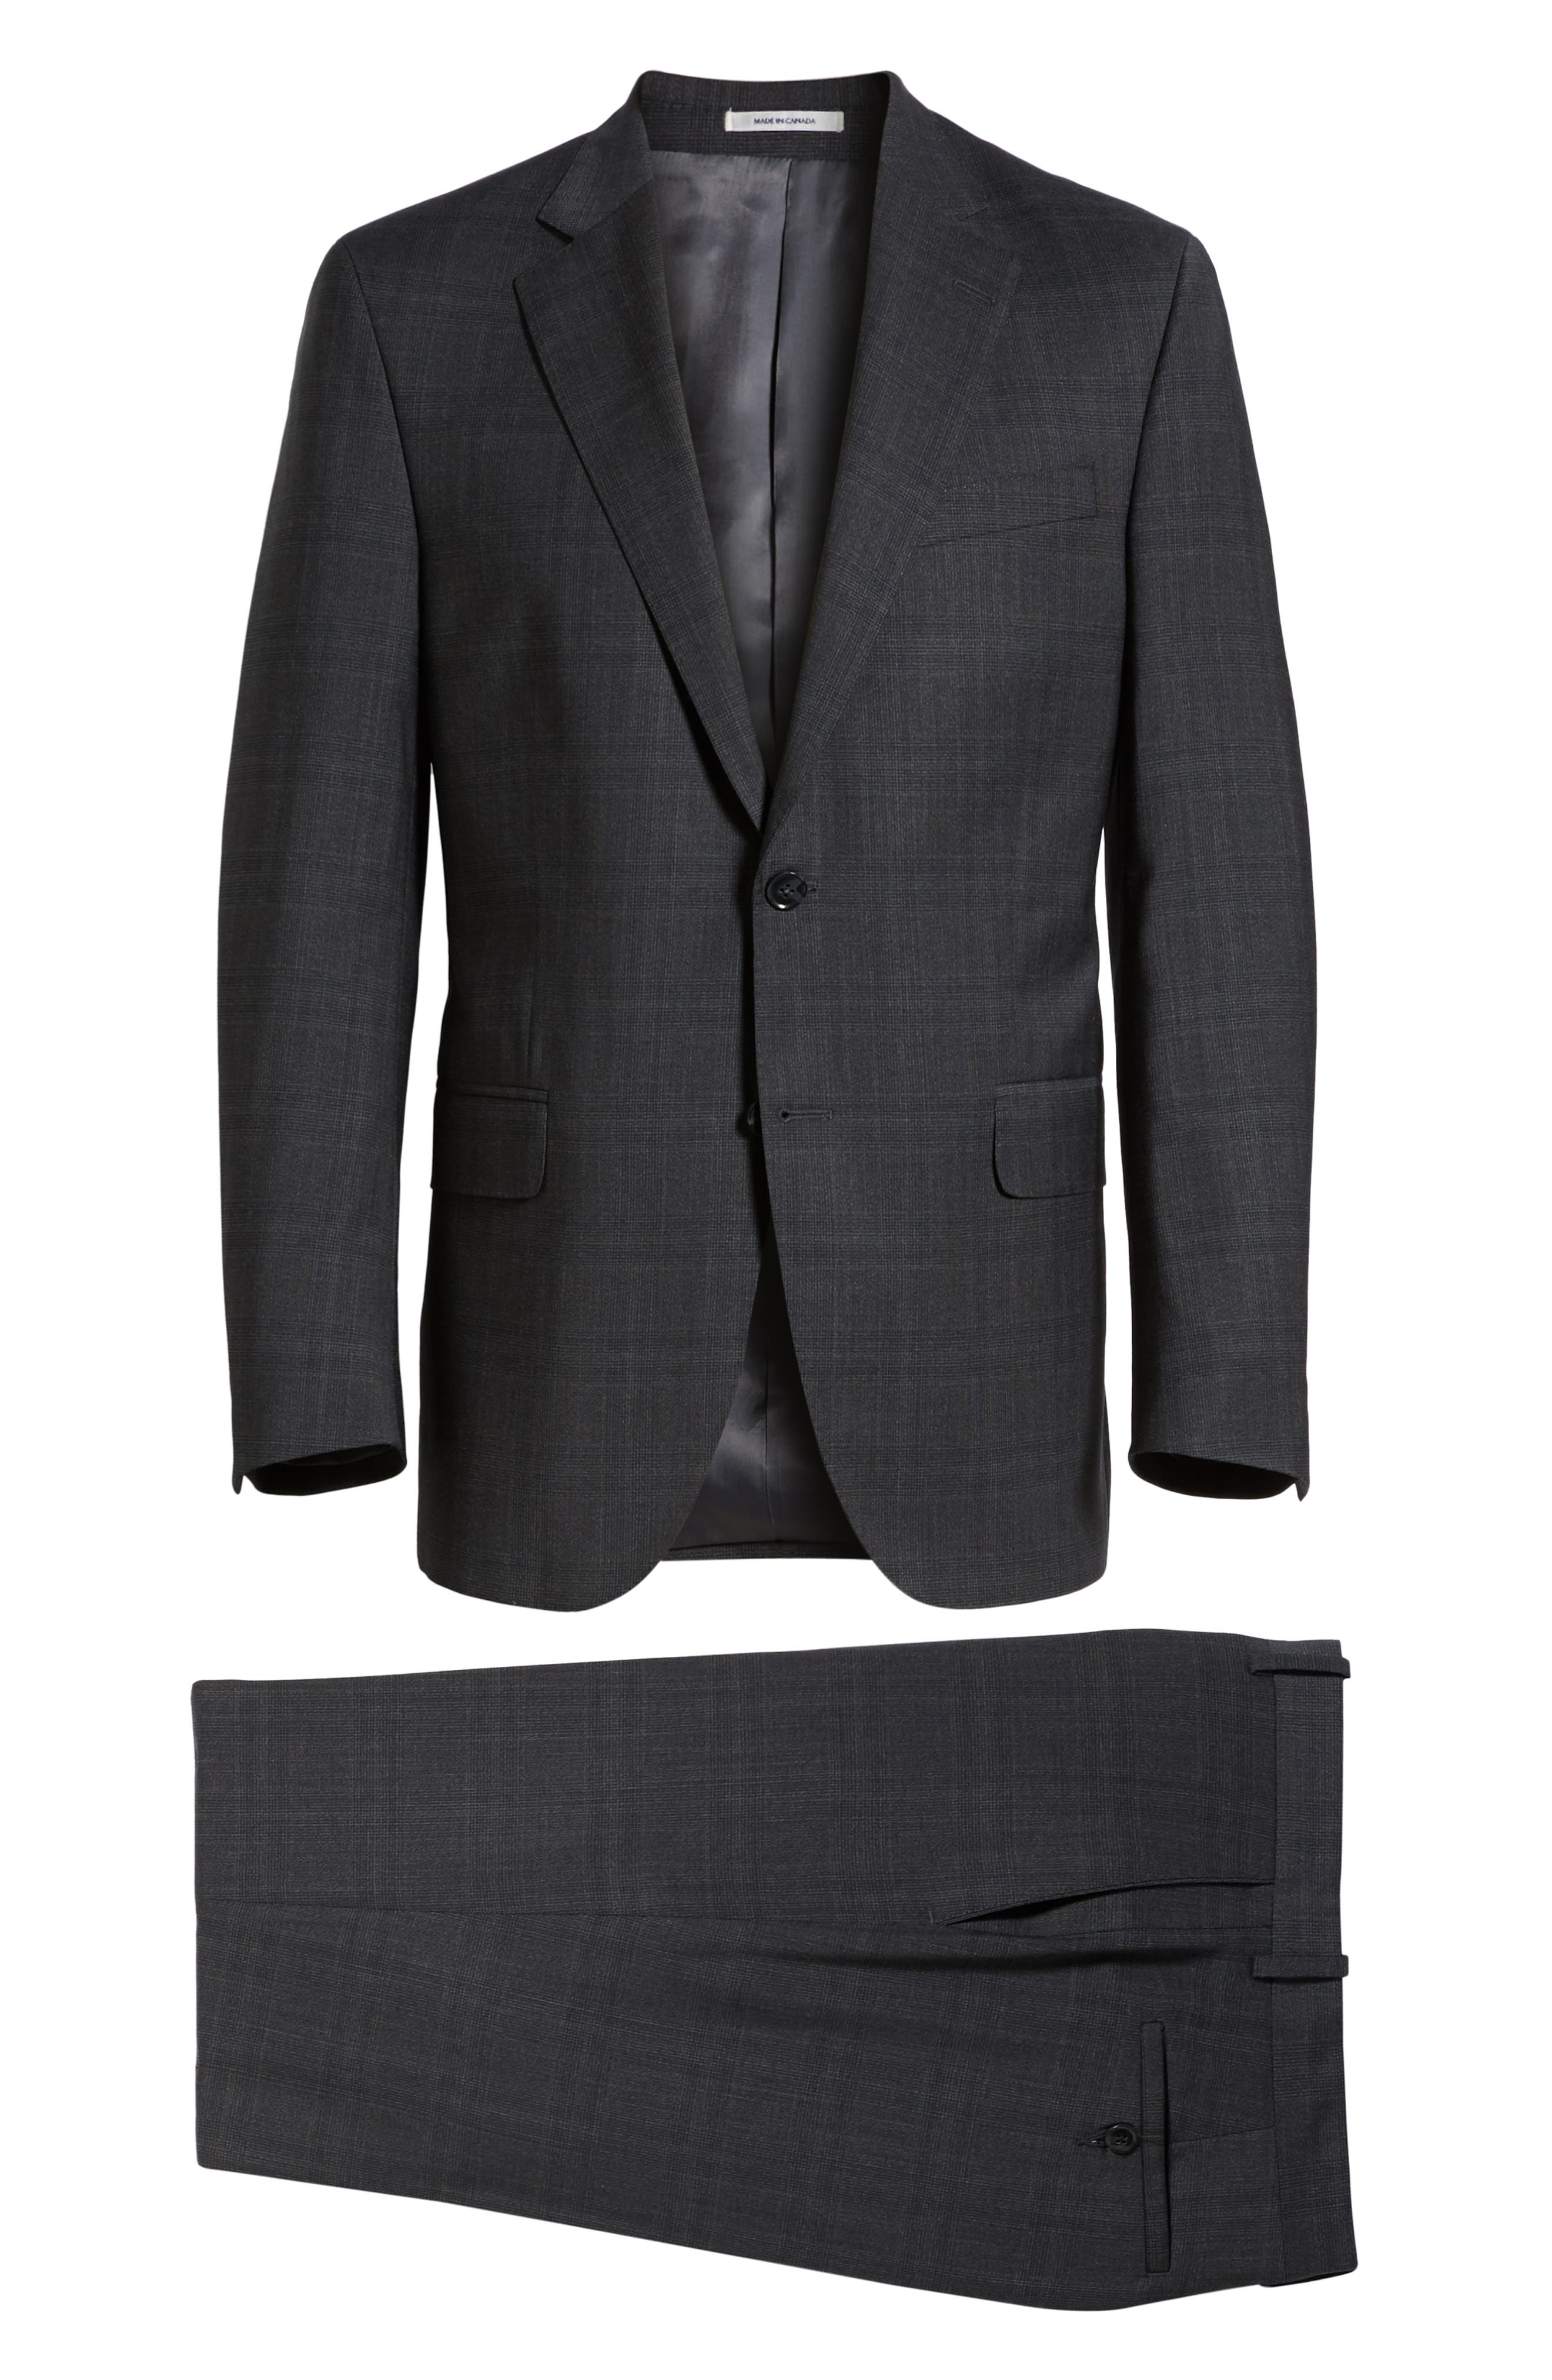 Flynn Classic Fit Plaid Wool Suit,                             Alternate thumbnail 8, color,                             CHARCOAL